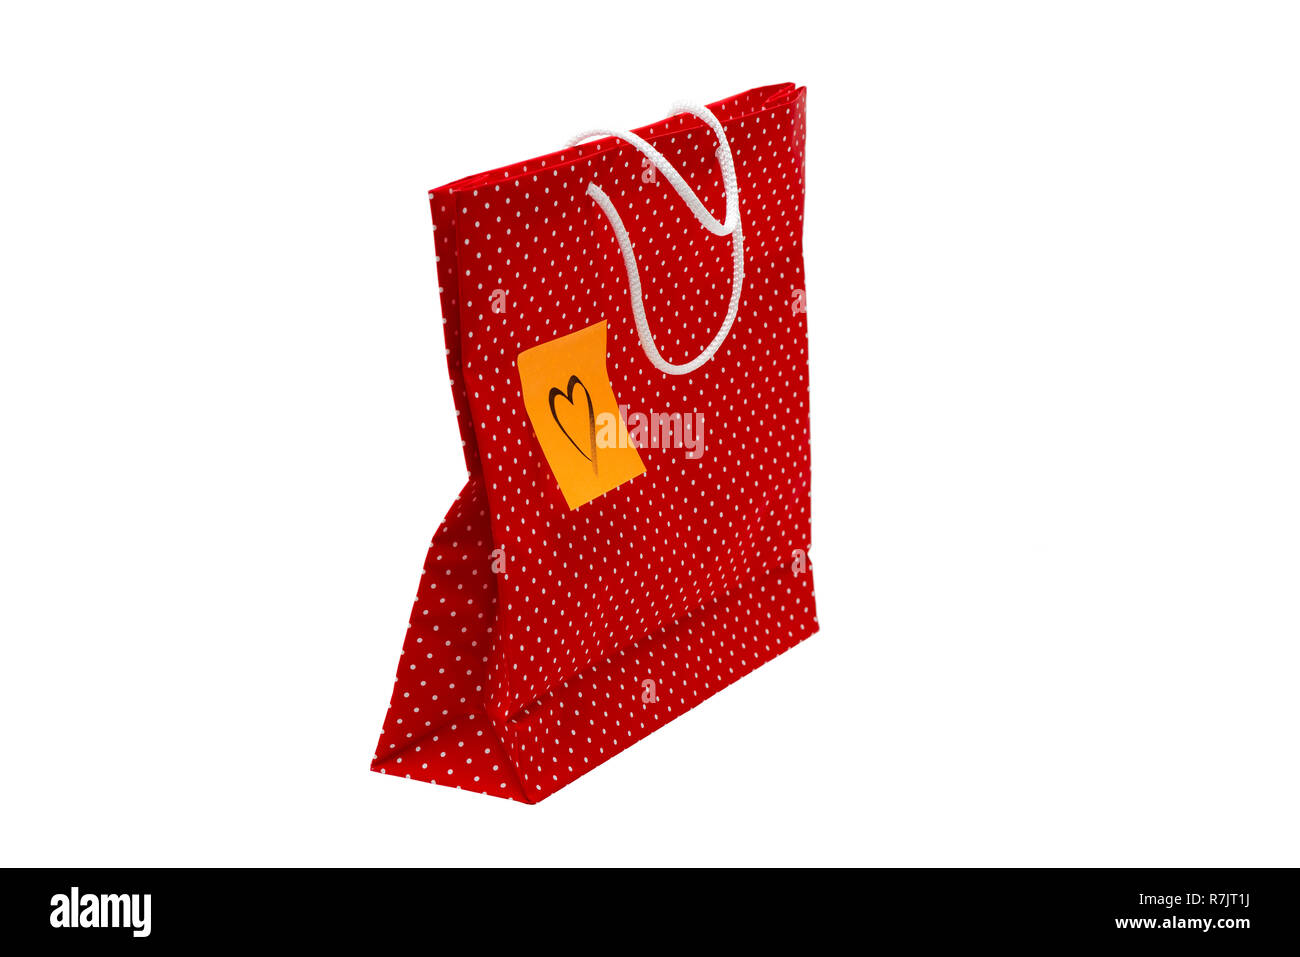 Gift bag with heart shape message, written by hand. Red polka dot paper bag isolated on white background. - Stock Image